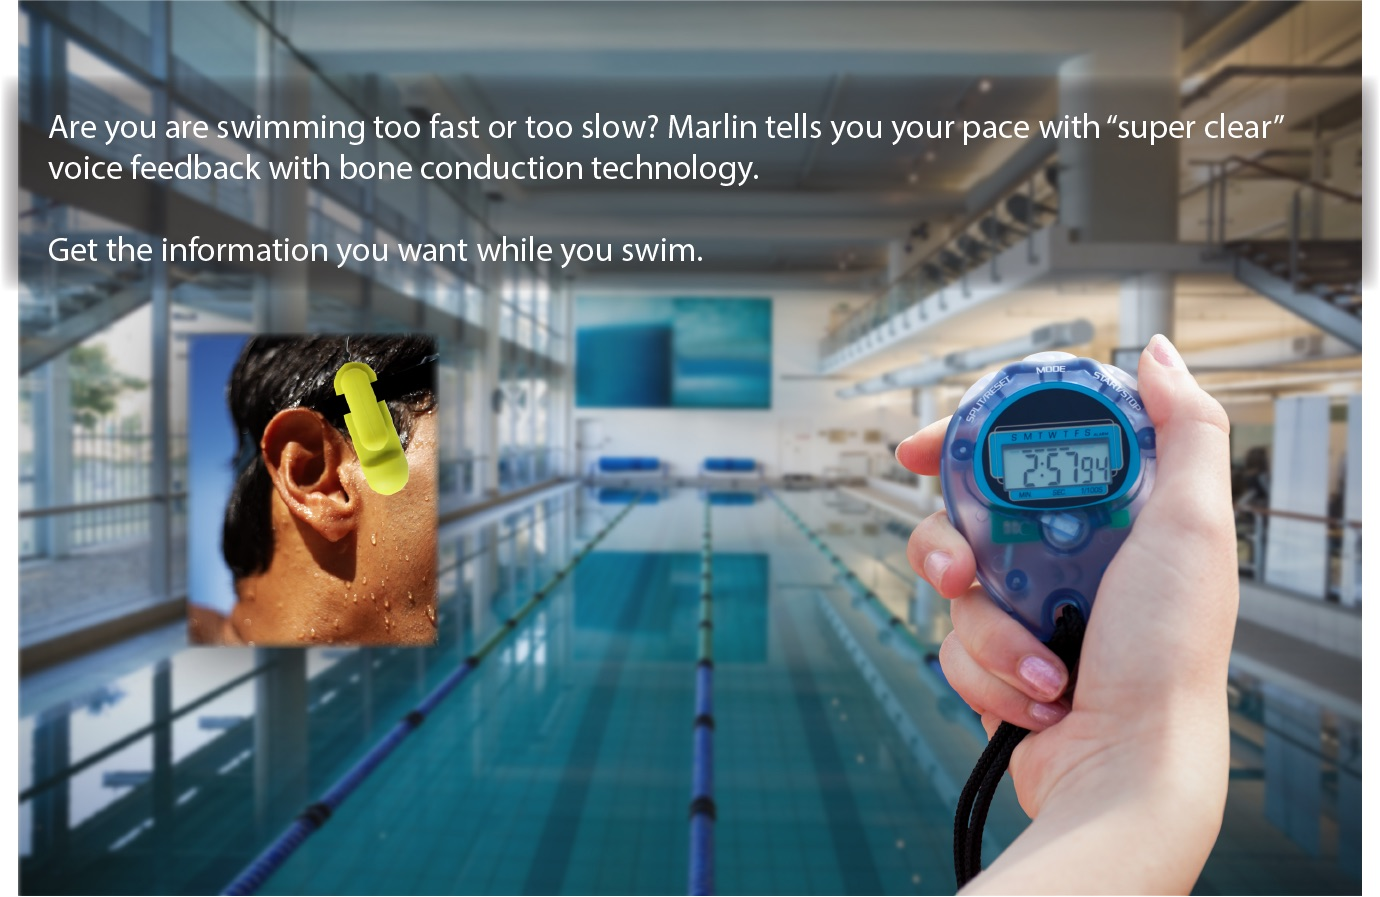 Are you swimming too fast or too slow? Marlin tells you your pace with super clear voice feedback with bone conduction technology. Get the information you want while you swim